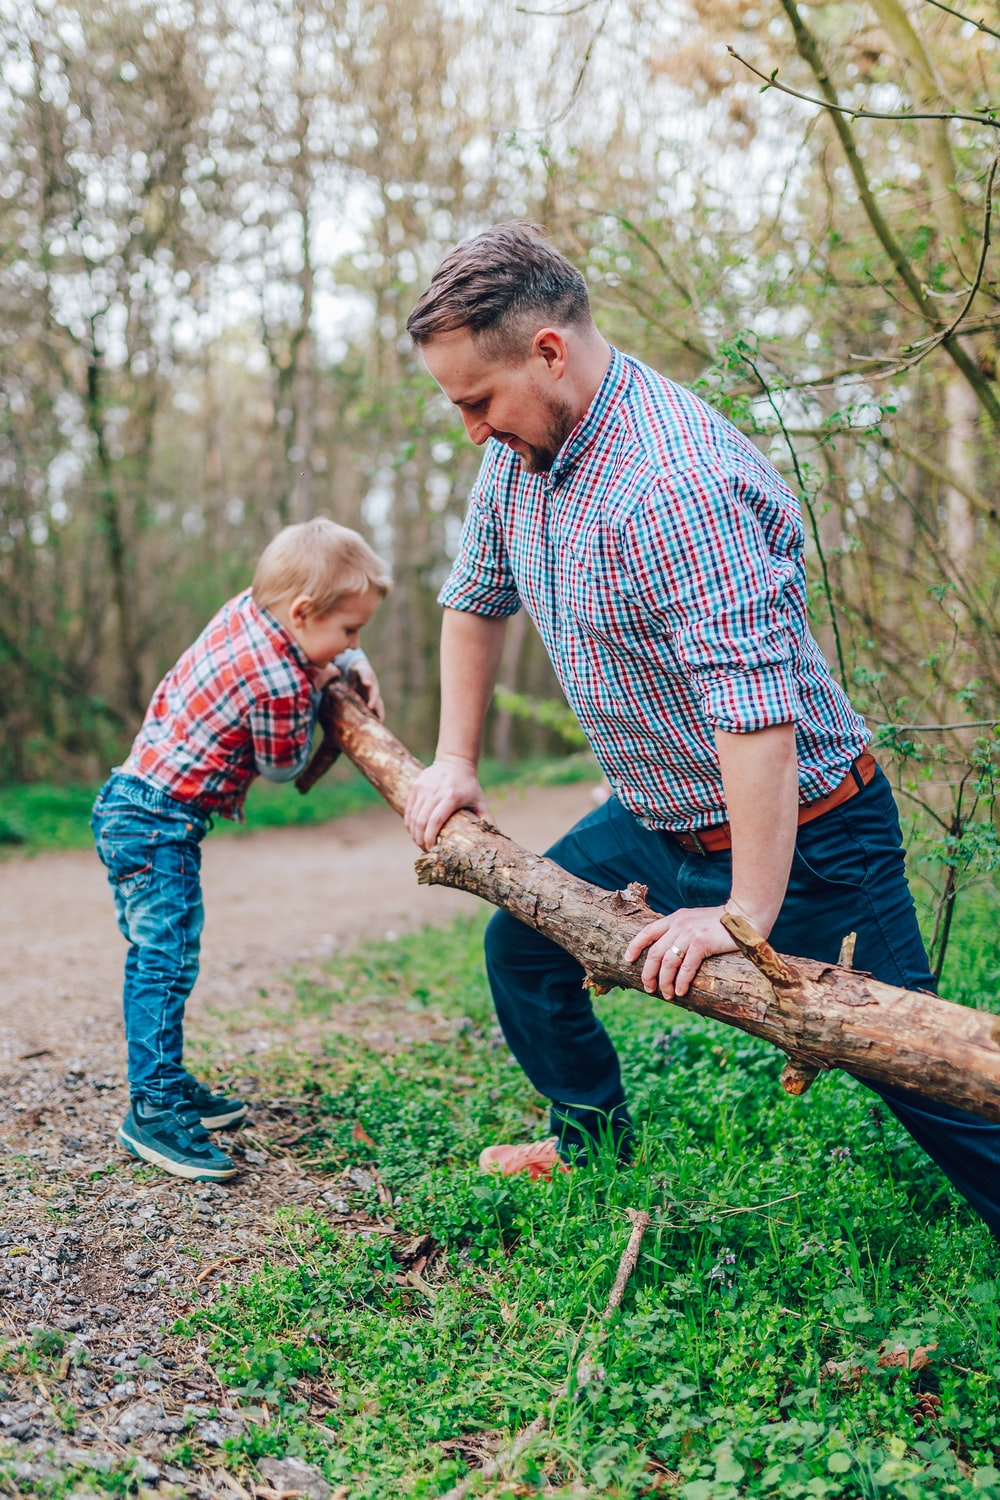 man holding tree branch in front of boy